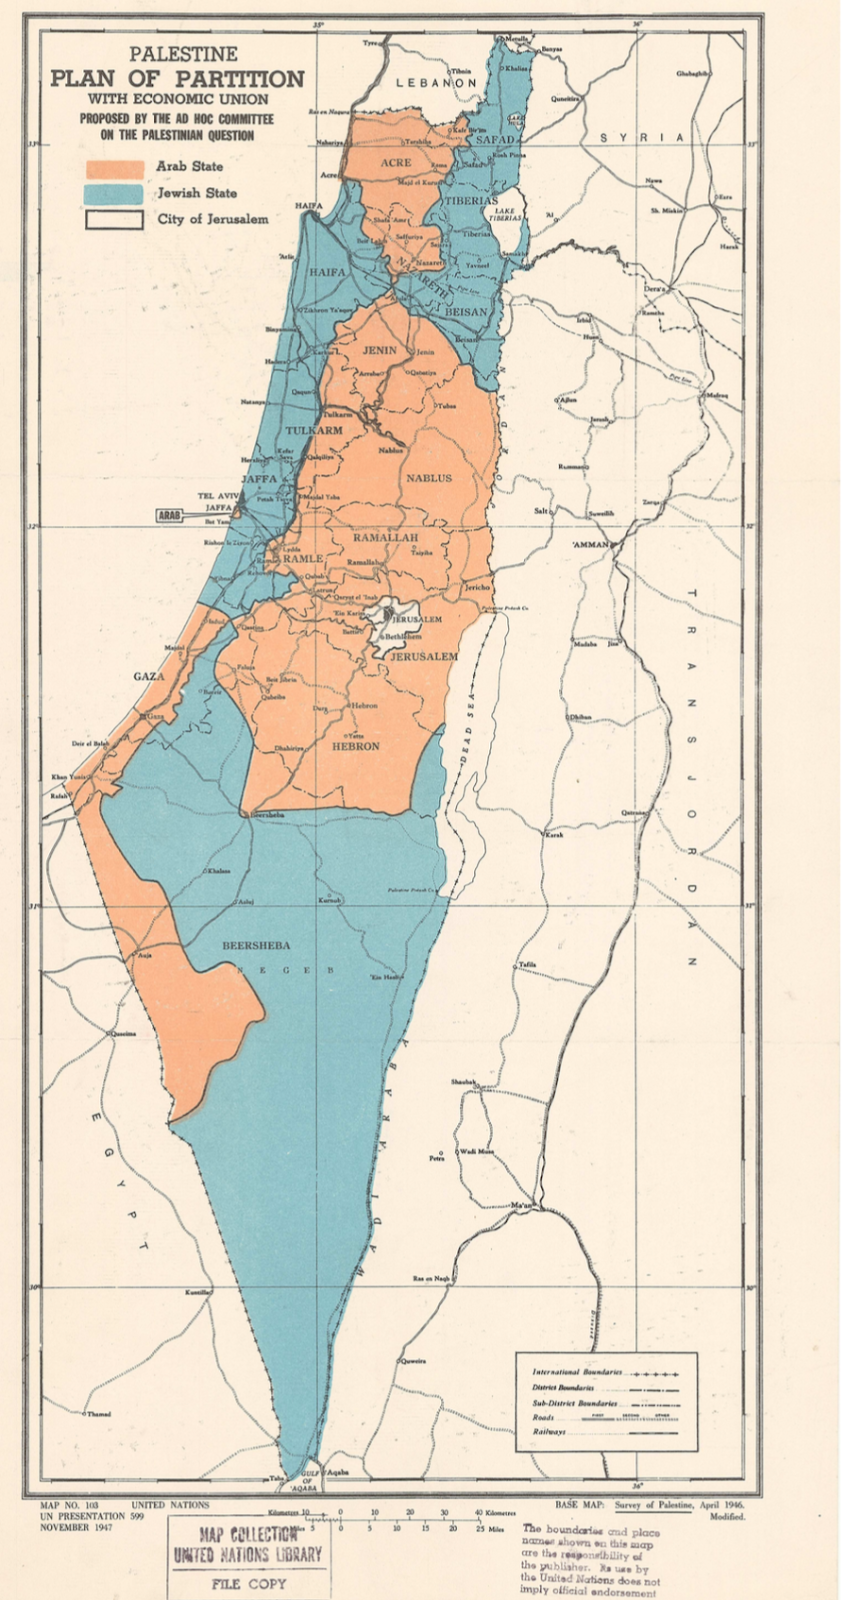 palestine plan of partition 1947